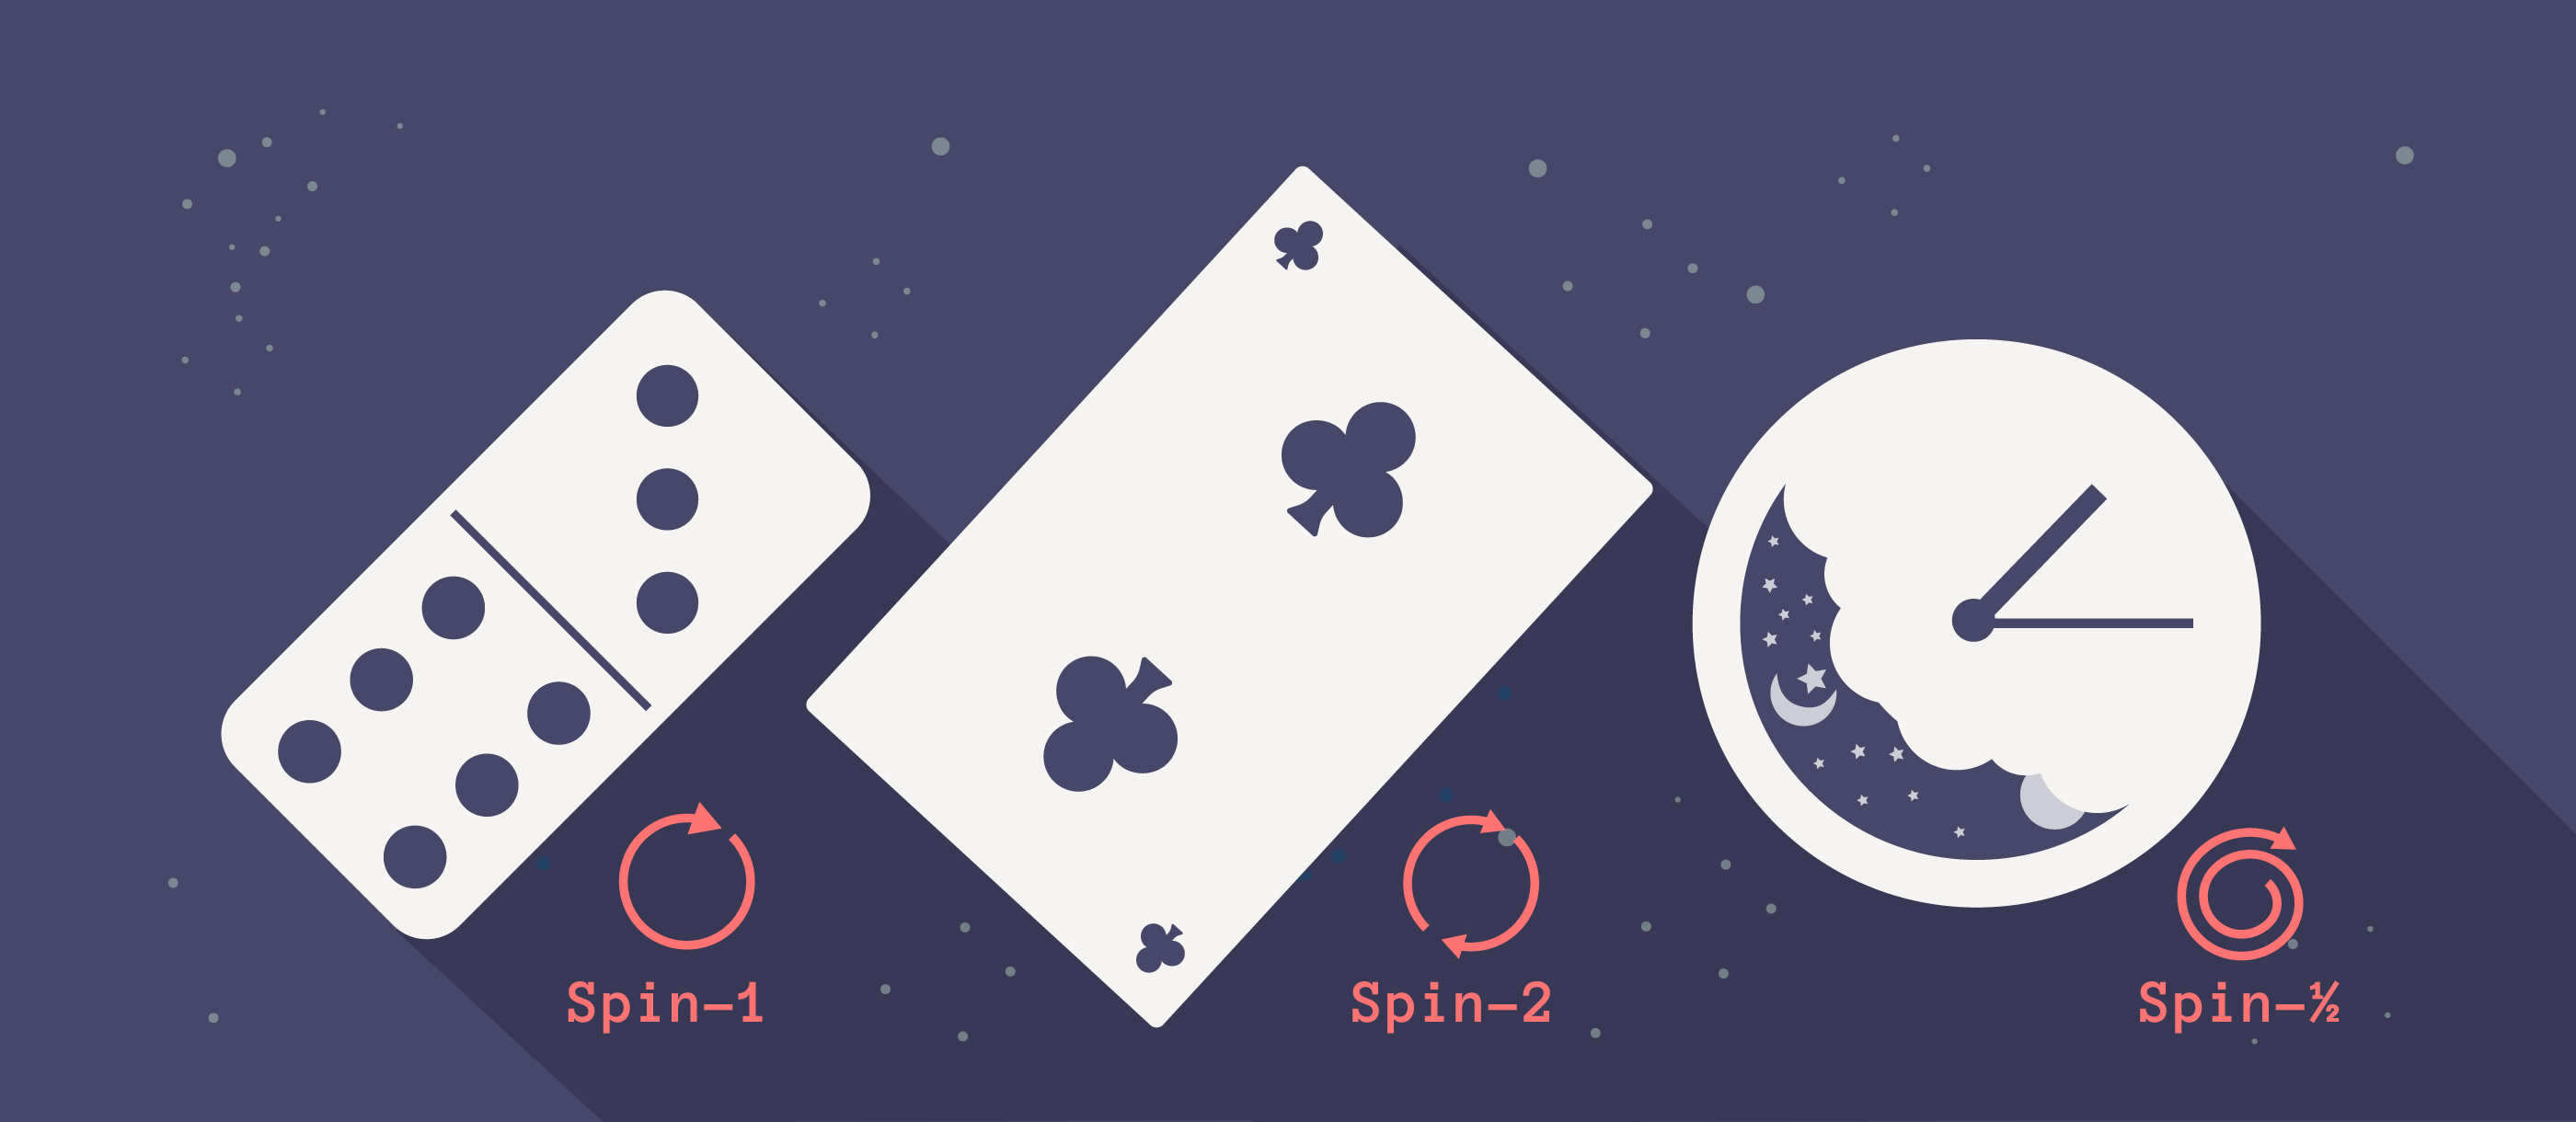 A domino, a two of clubs, and a clock face.